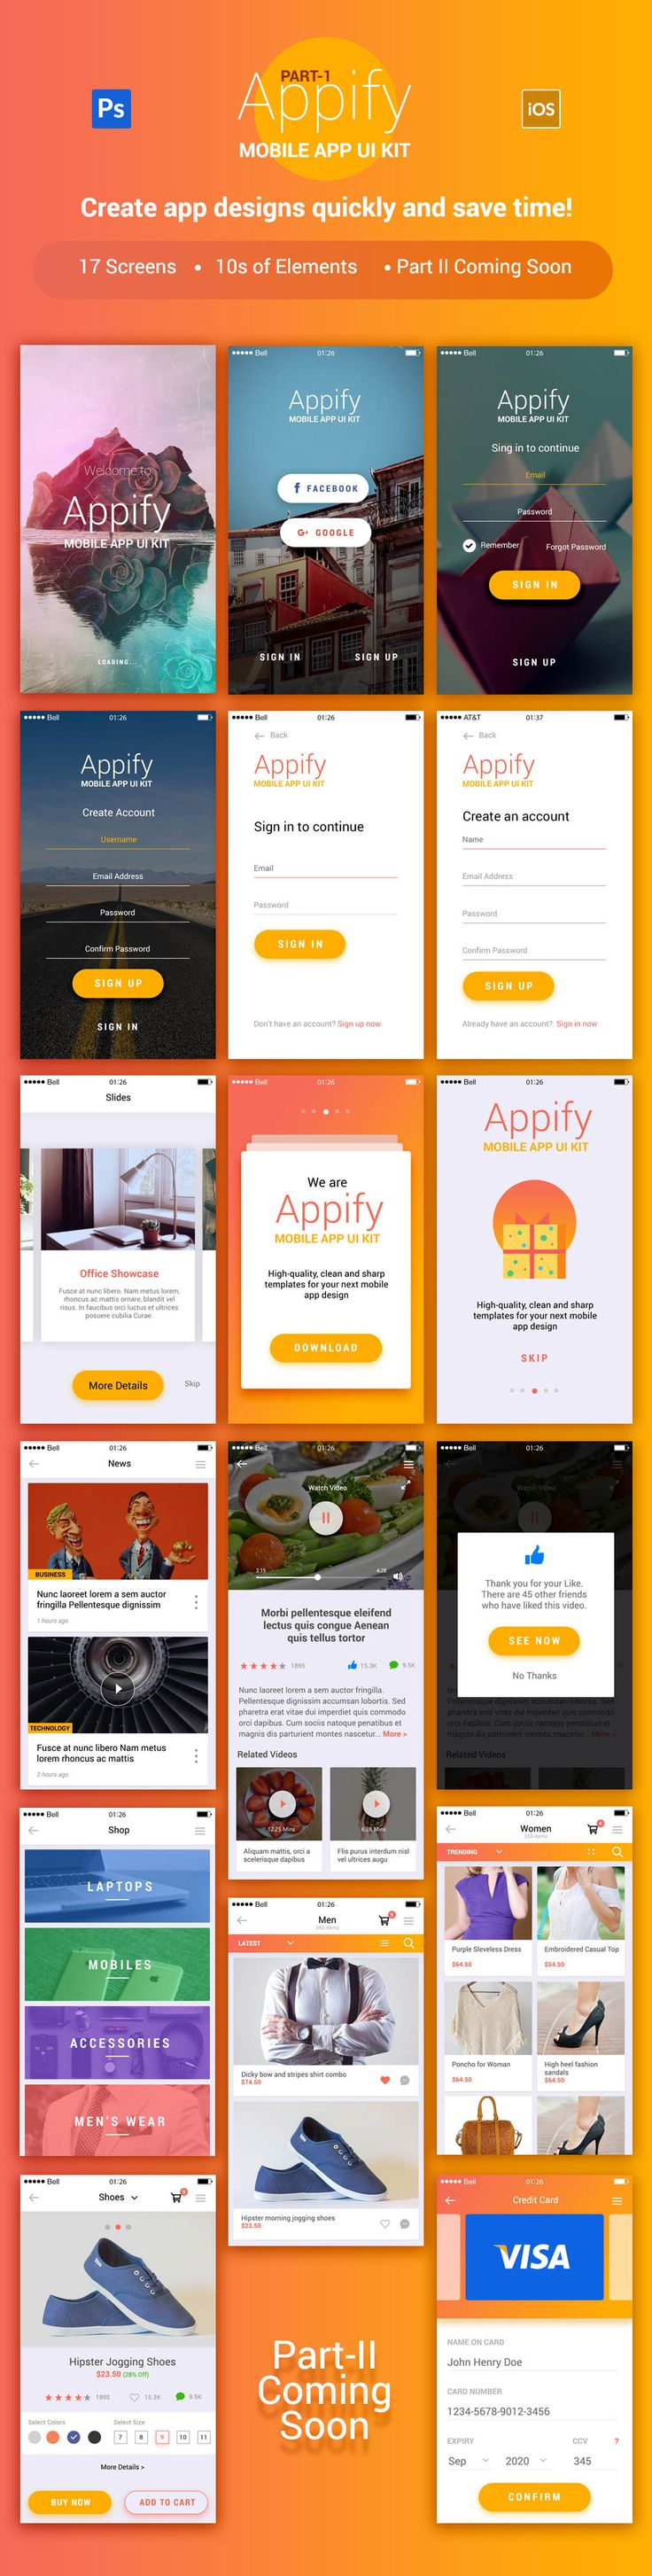 Today I'll introduce you Appify – Free Mobile App UI Kit Vol.1. It is a new mobile app UI Kit for creating beautiful mobile apps perfect for Ecommerce, news, stories, music and more.All you need to do is click the download button and enjoy it!